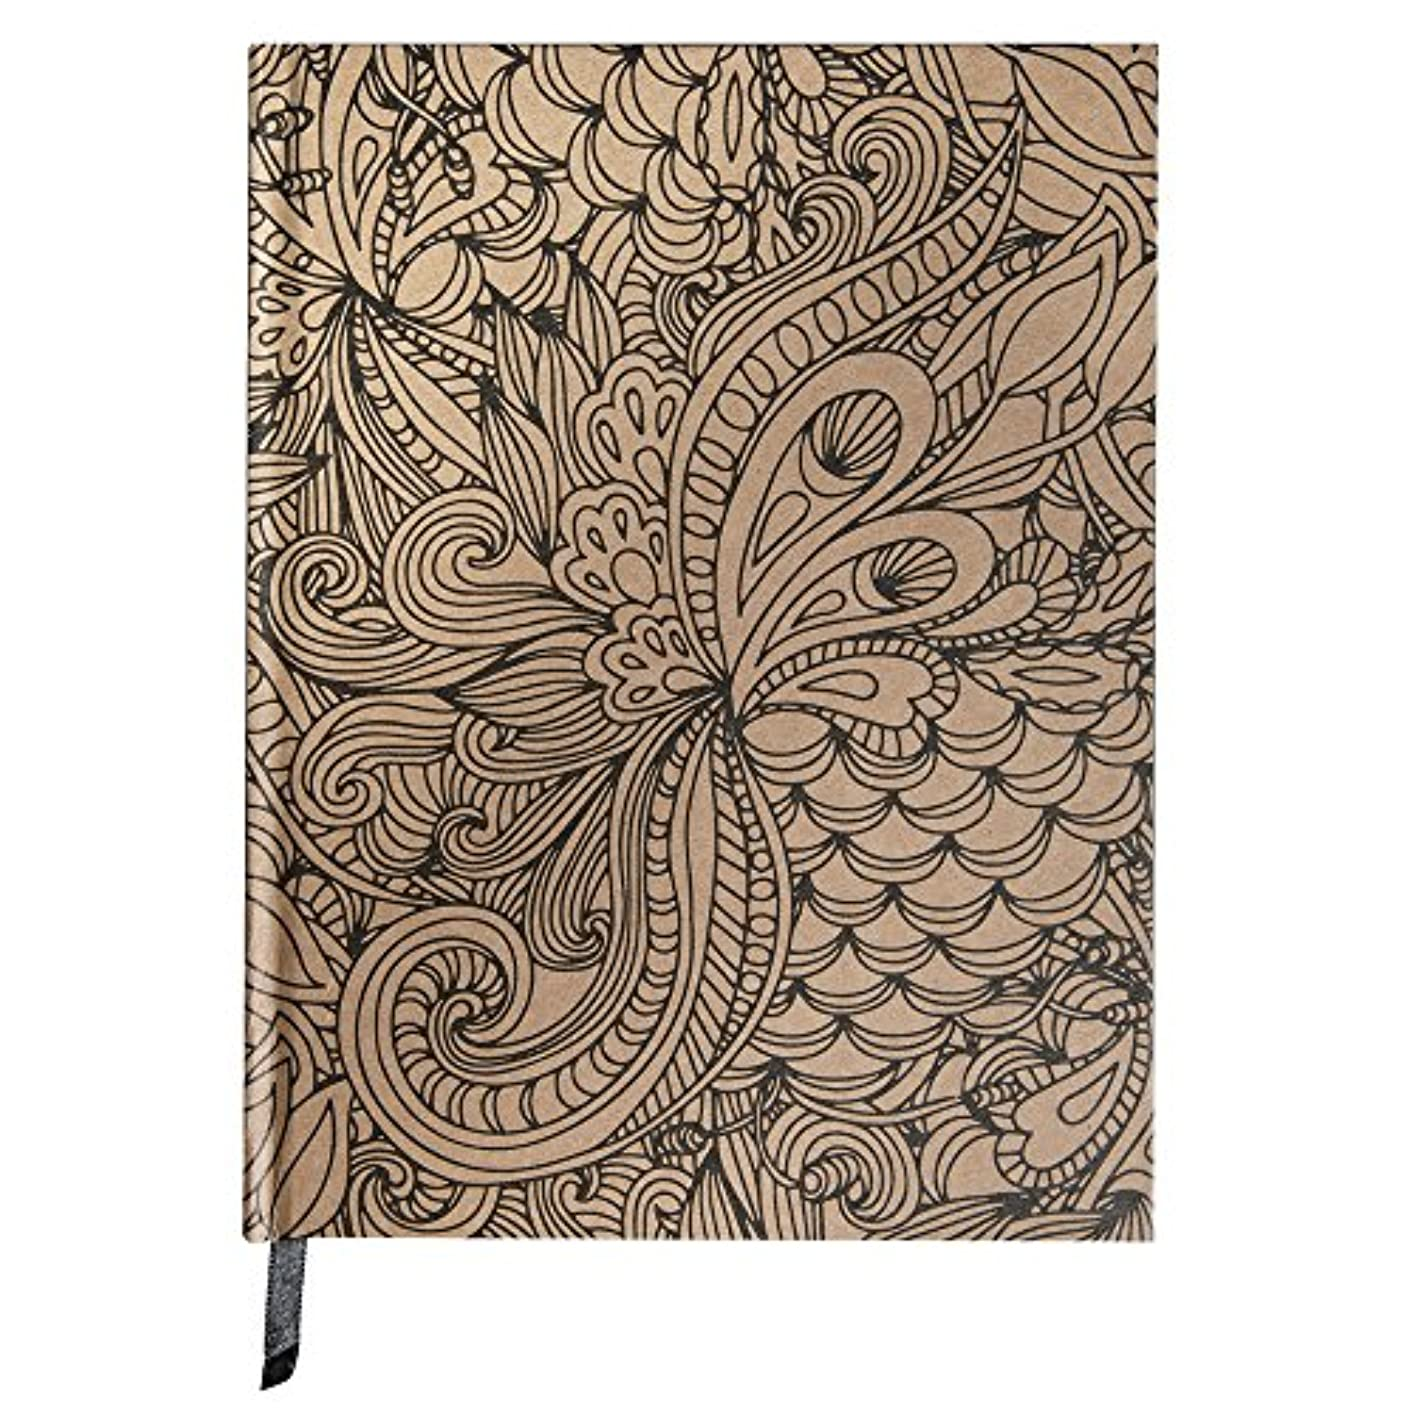 RAYHER HOBBY 67179521?Tangle Jungle Pack of 65?Sheets FSC Mixed Credit Paper Notebook 2.1?x 1.6?x 0.16?cm